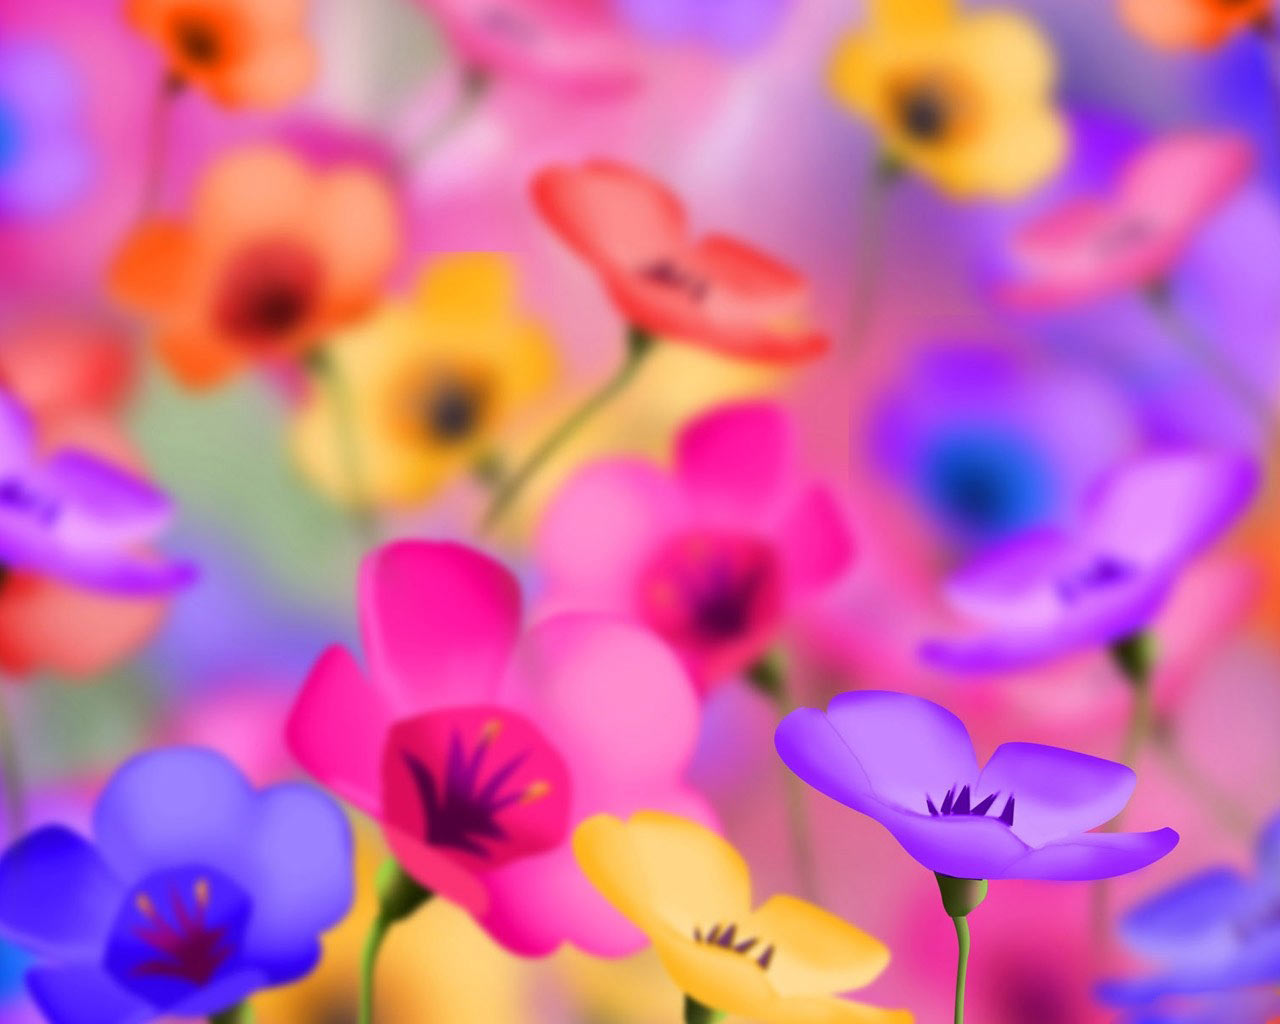 flowers for flower lovers Flowers background desktop 1280x1024